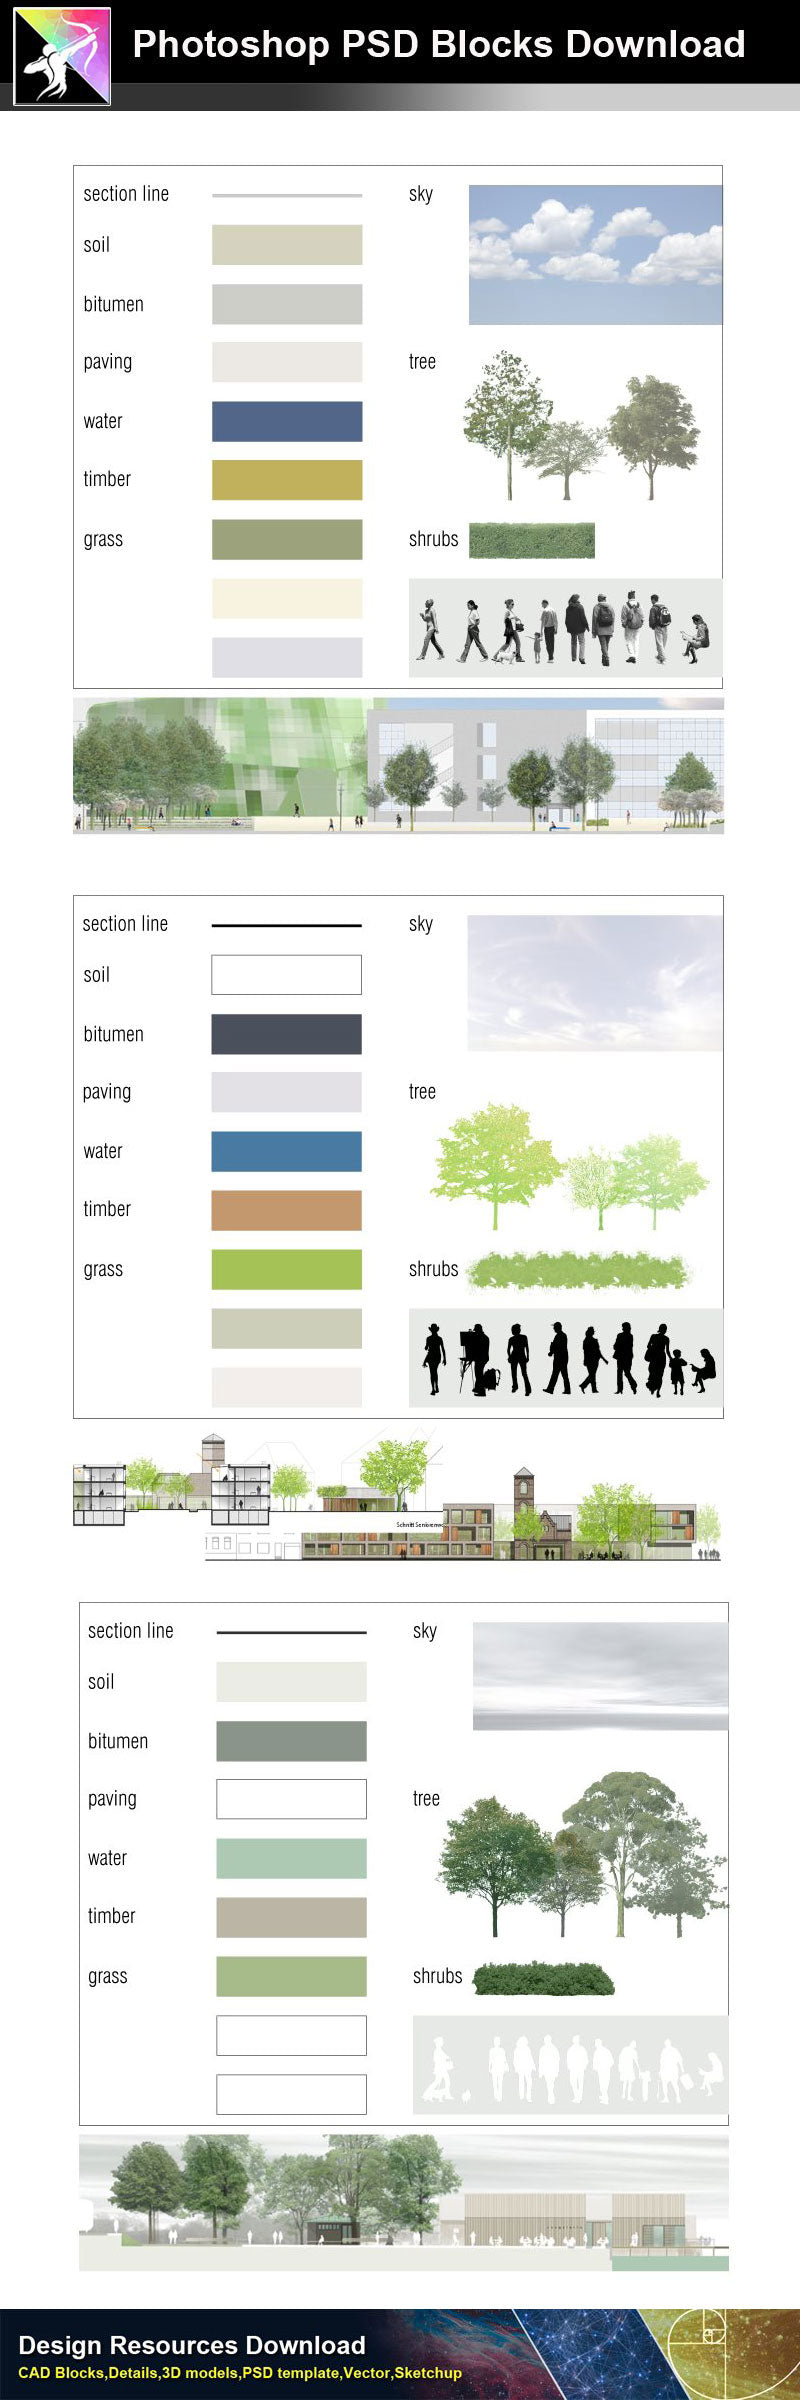 【Photoshop PSD Landscape Blocks】Landscape Plan,Elevation Blocks V.1(Recommanded!!)